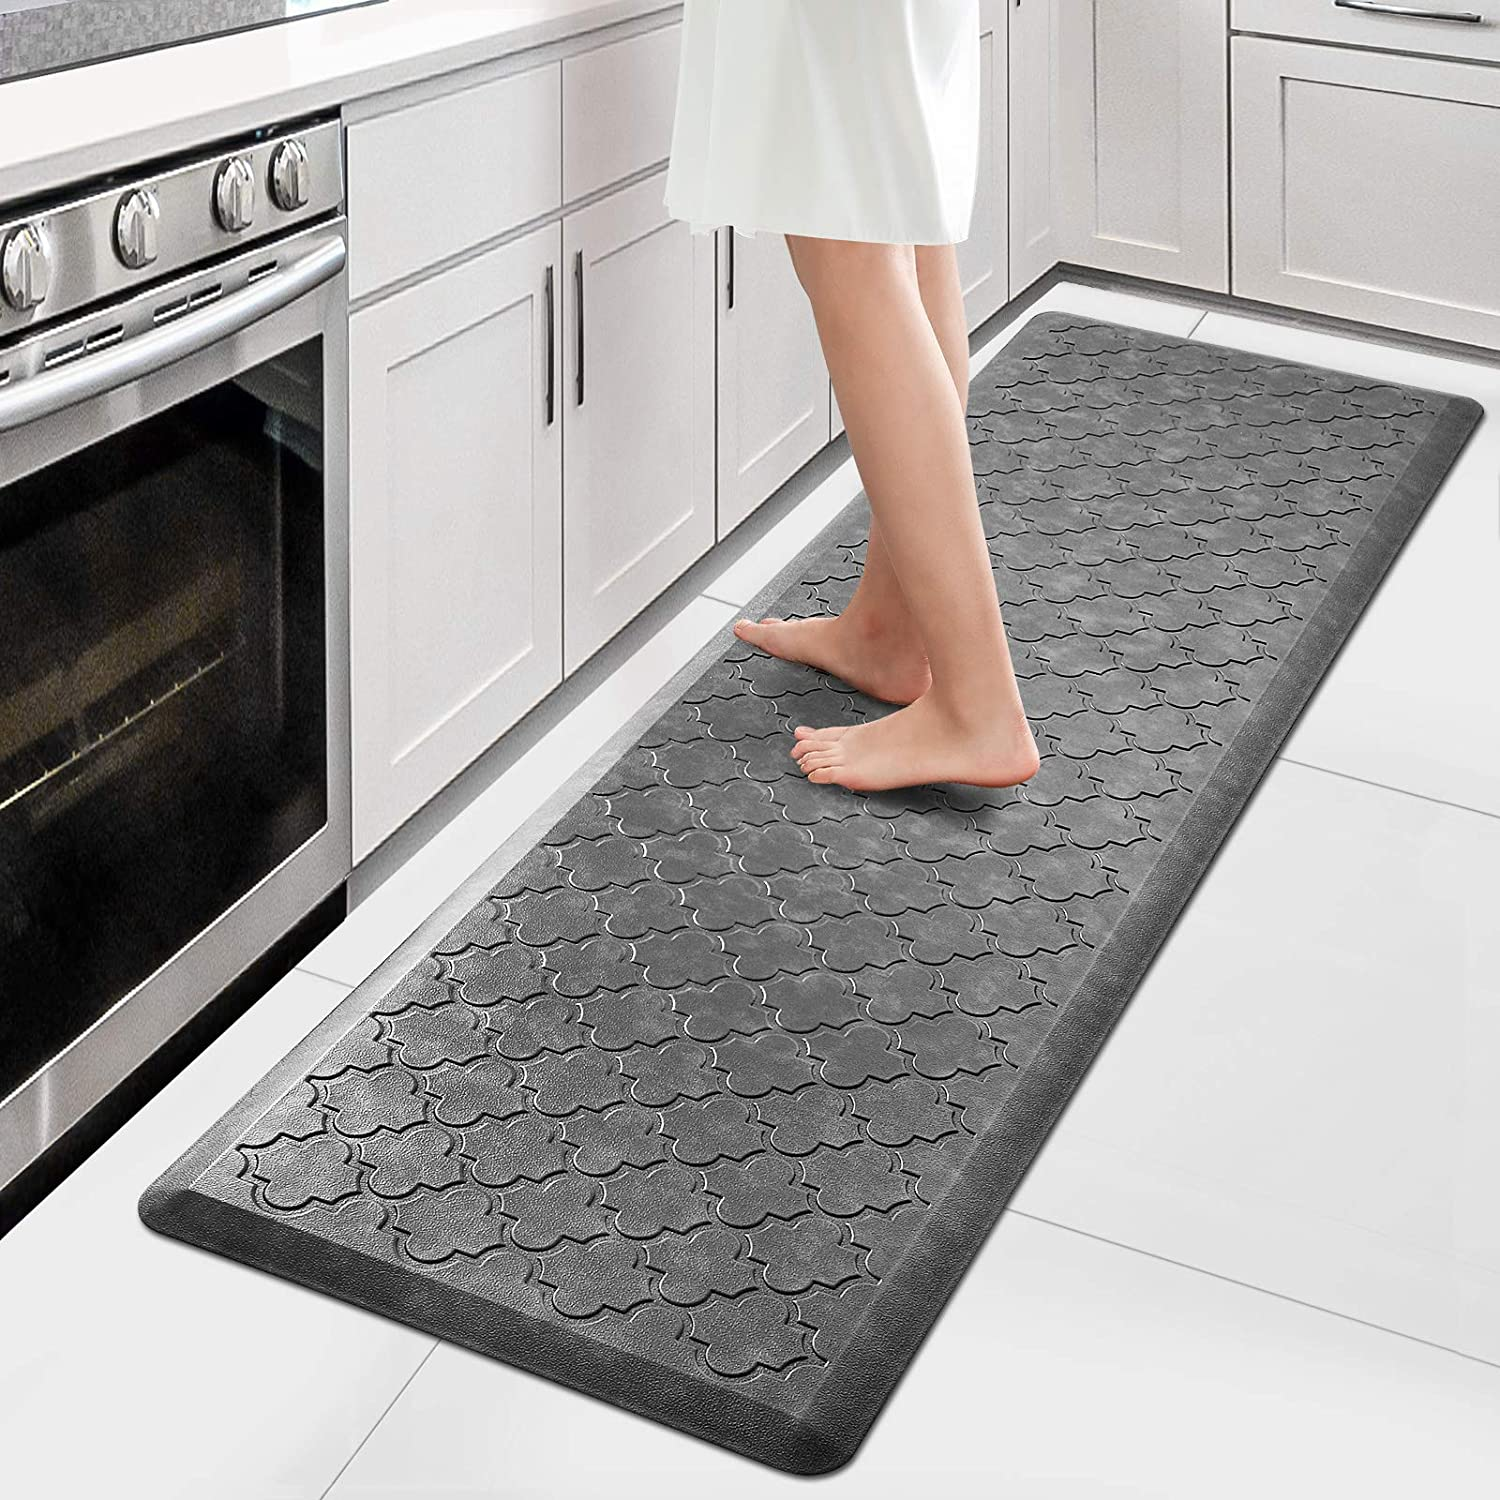 WiseLife Kitchen Mat Cushioned Anti Fatigue Floor Mat,9.9